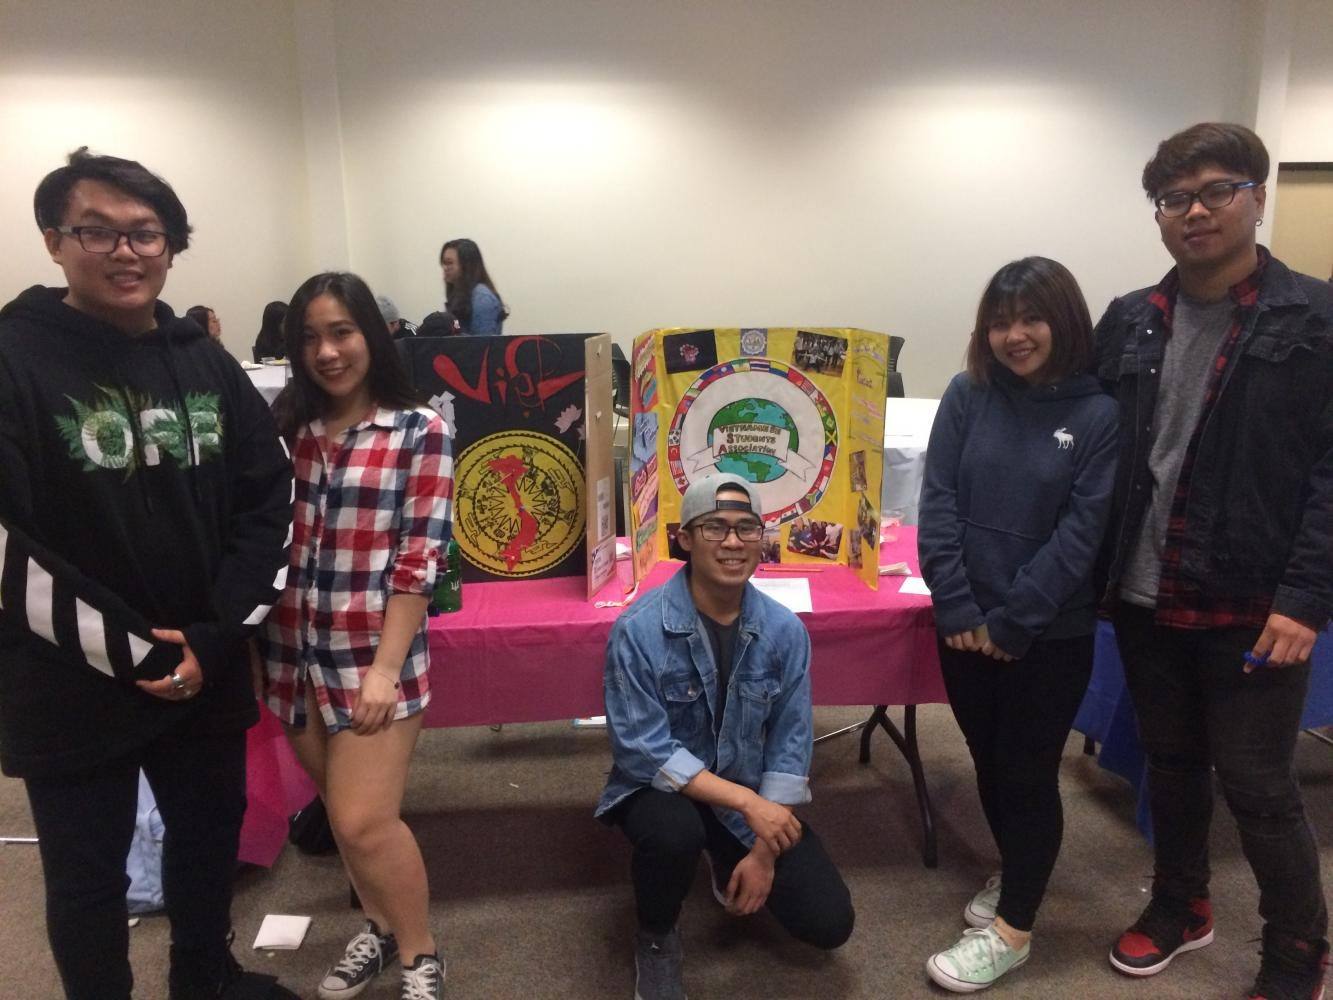 Members of the college's Vietnamese Student Association (VSA) represented their club at a booth at the Spring Club Fair on May 10. This year, the VSA catered an event and donated the proceeds to an orphanage.